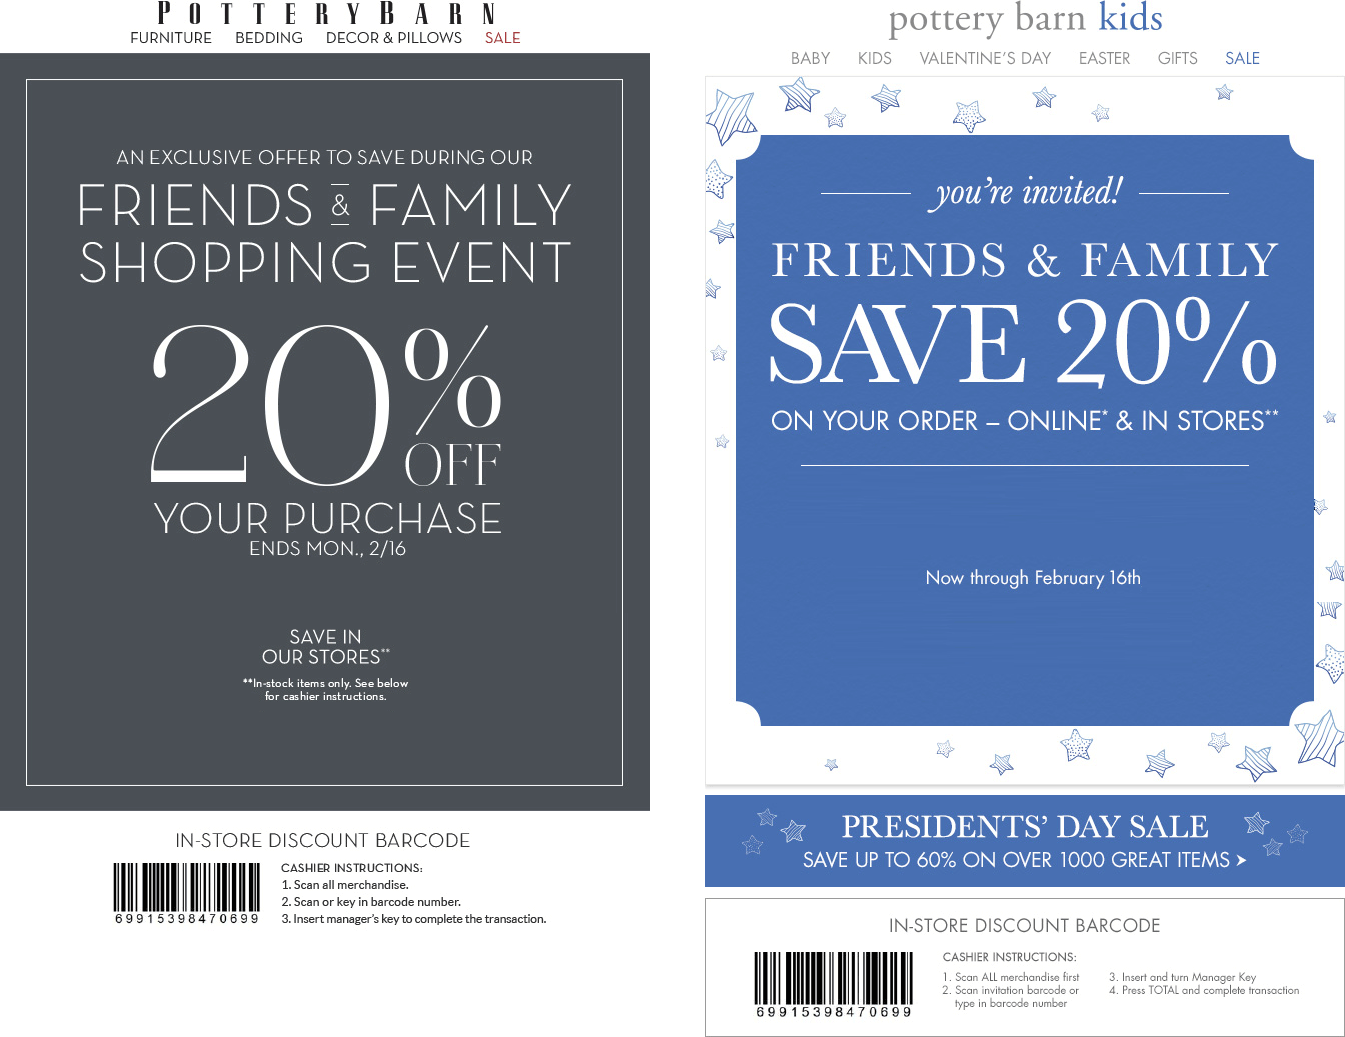 Pottery Barn Kids features limited-time offers, closeout sales, clearance, and promotions on their homepage and through signing up for email. How to get Free Shipping at Pottery Barn Kids Pottery Barn Kids shipping starts at $ and varies on order total.